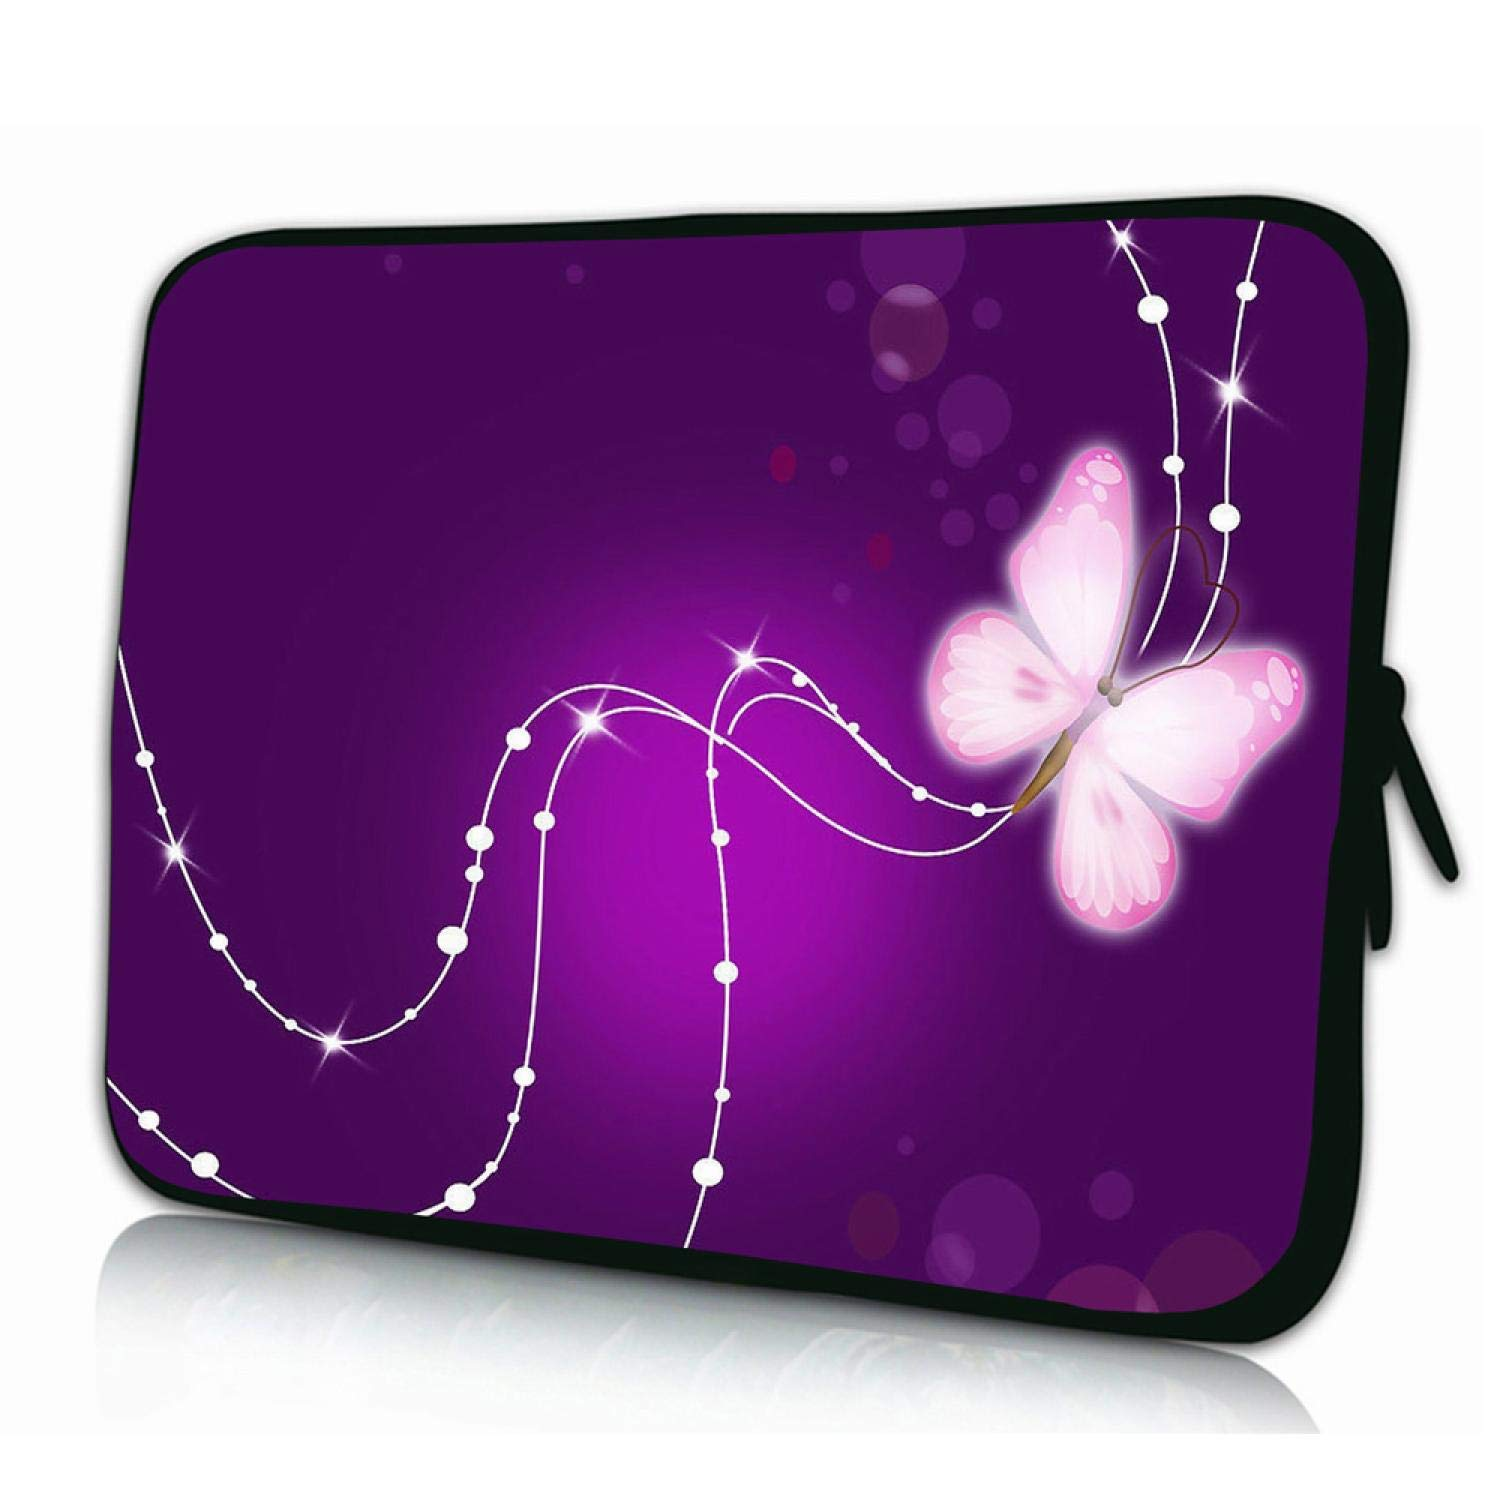 Amazon.com: for Funda Portatil Bolsas 7 10 12 11.6 12.3 10.1 ...